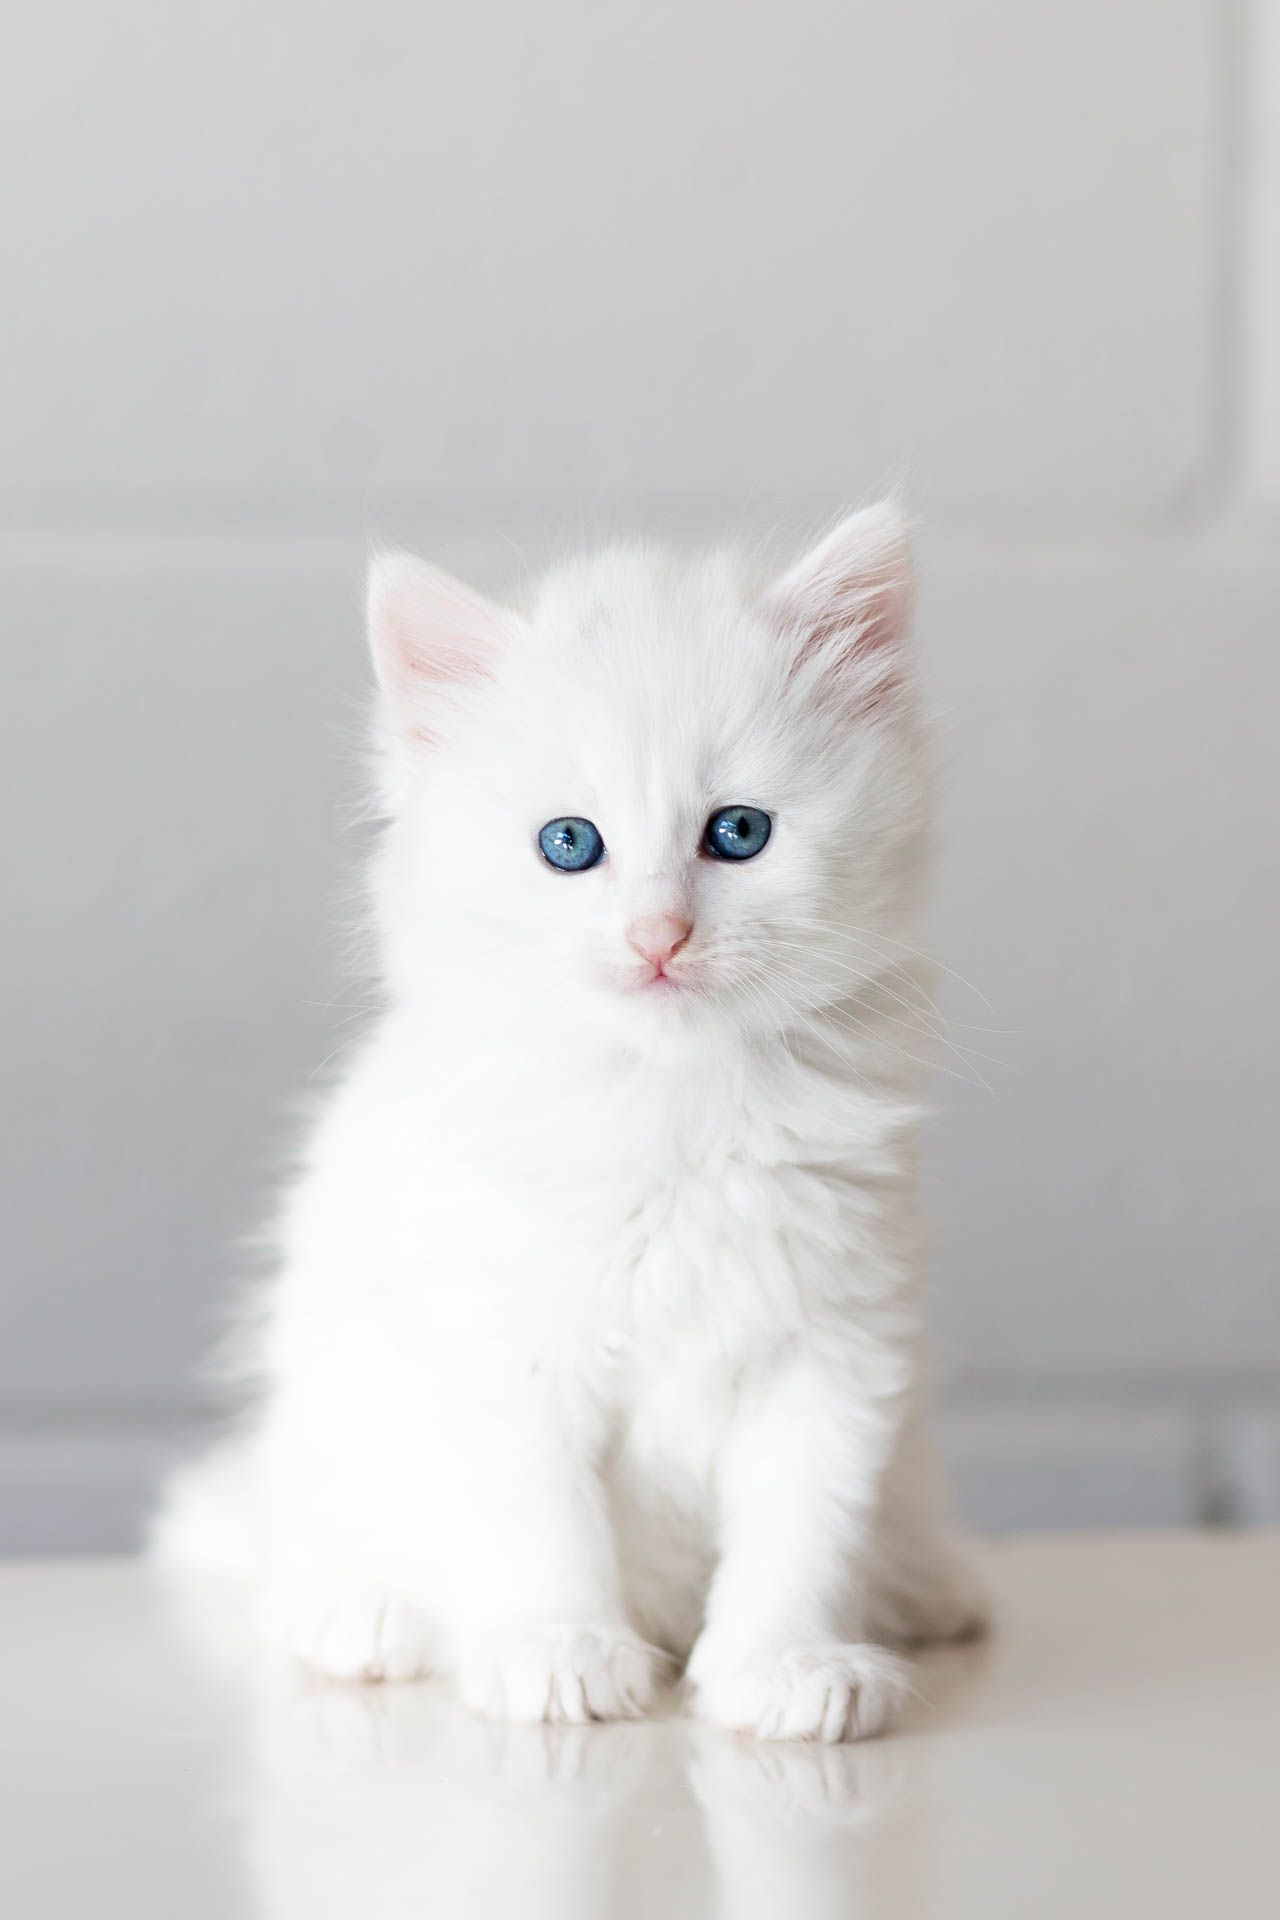 This 5 Week Old Kitten Called Sugar Just Arrived At My Shelter I Don T Think She Ll Have To Wait Very Long To Find A Home O Cute Cats Pretty Cats Baby Animals